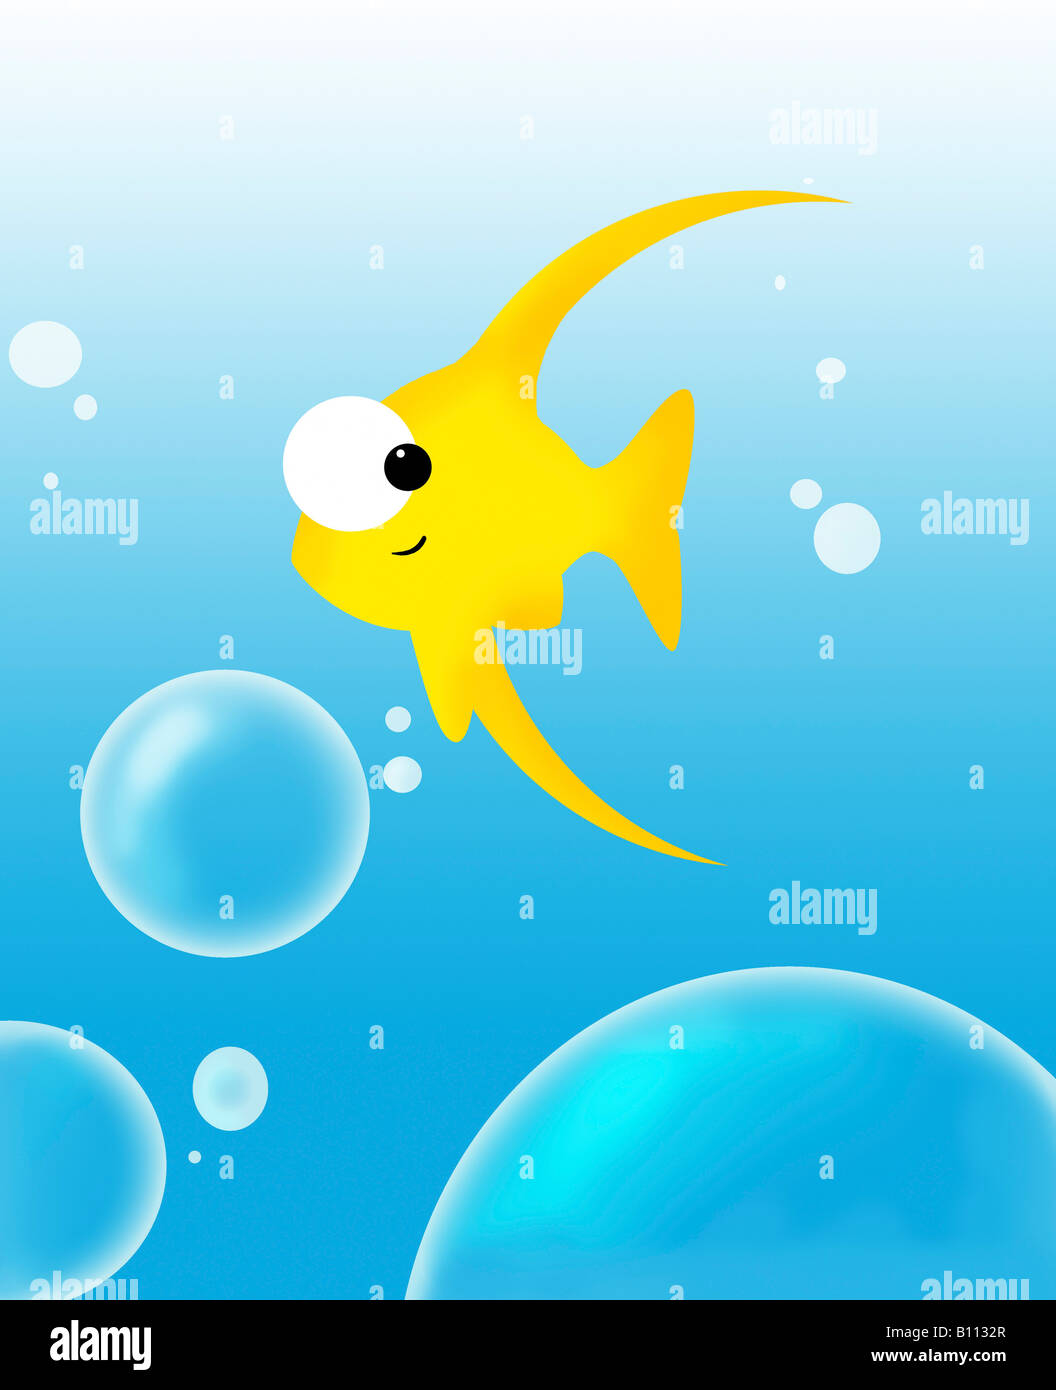 Illustration of fish and bubbles - Stock Image